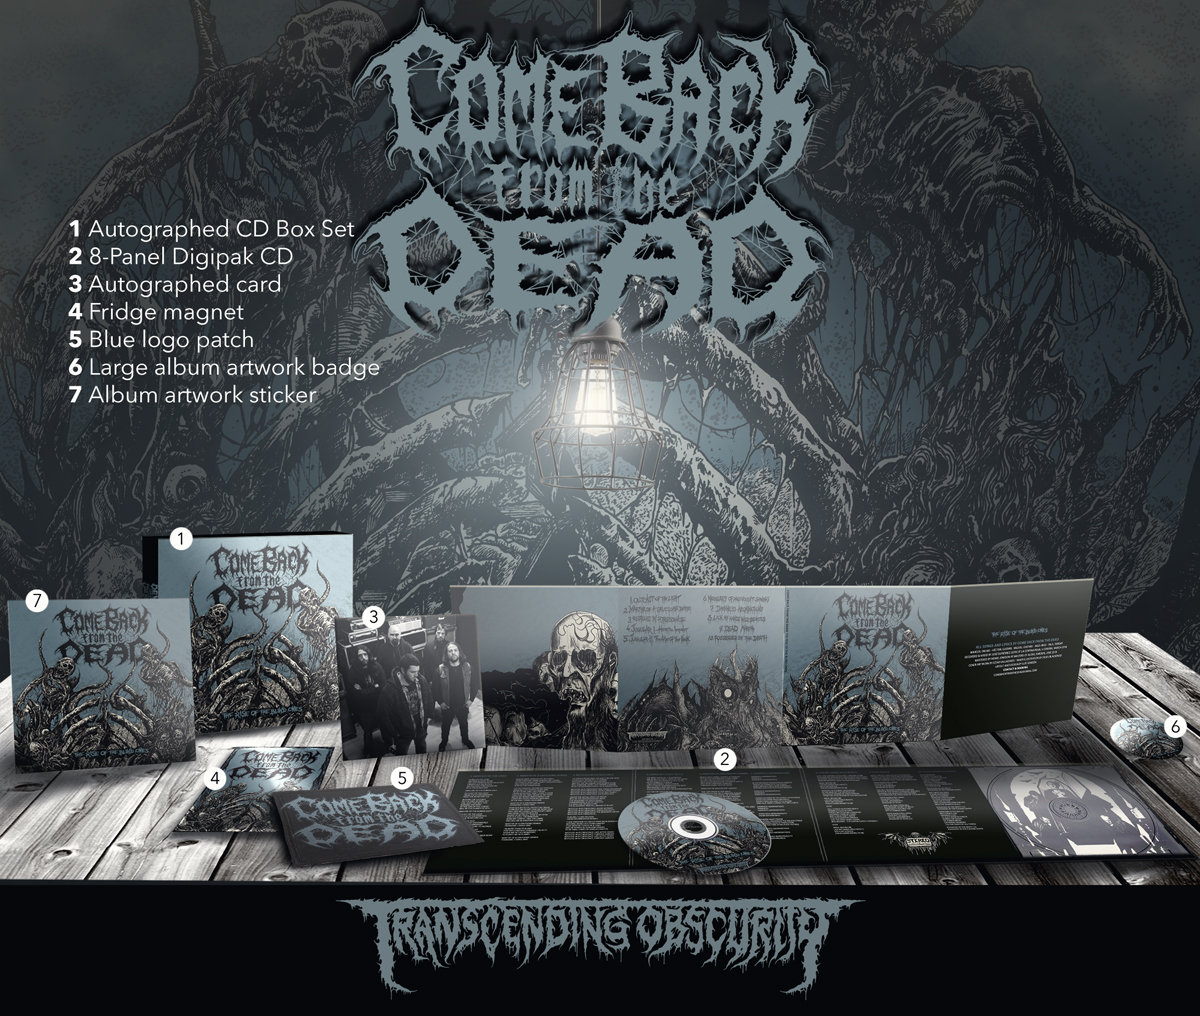 COME BACK FROM THE DEAD - 'The Rise of the Blind Ones' Autographed CD Box Set (SPECIAL PRE-ORDER PRICE!)